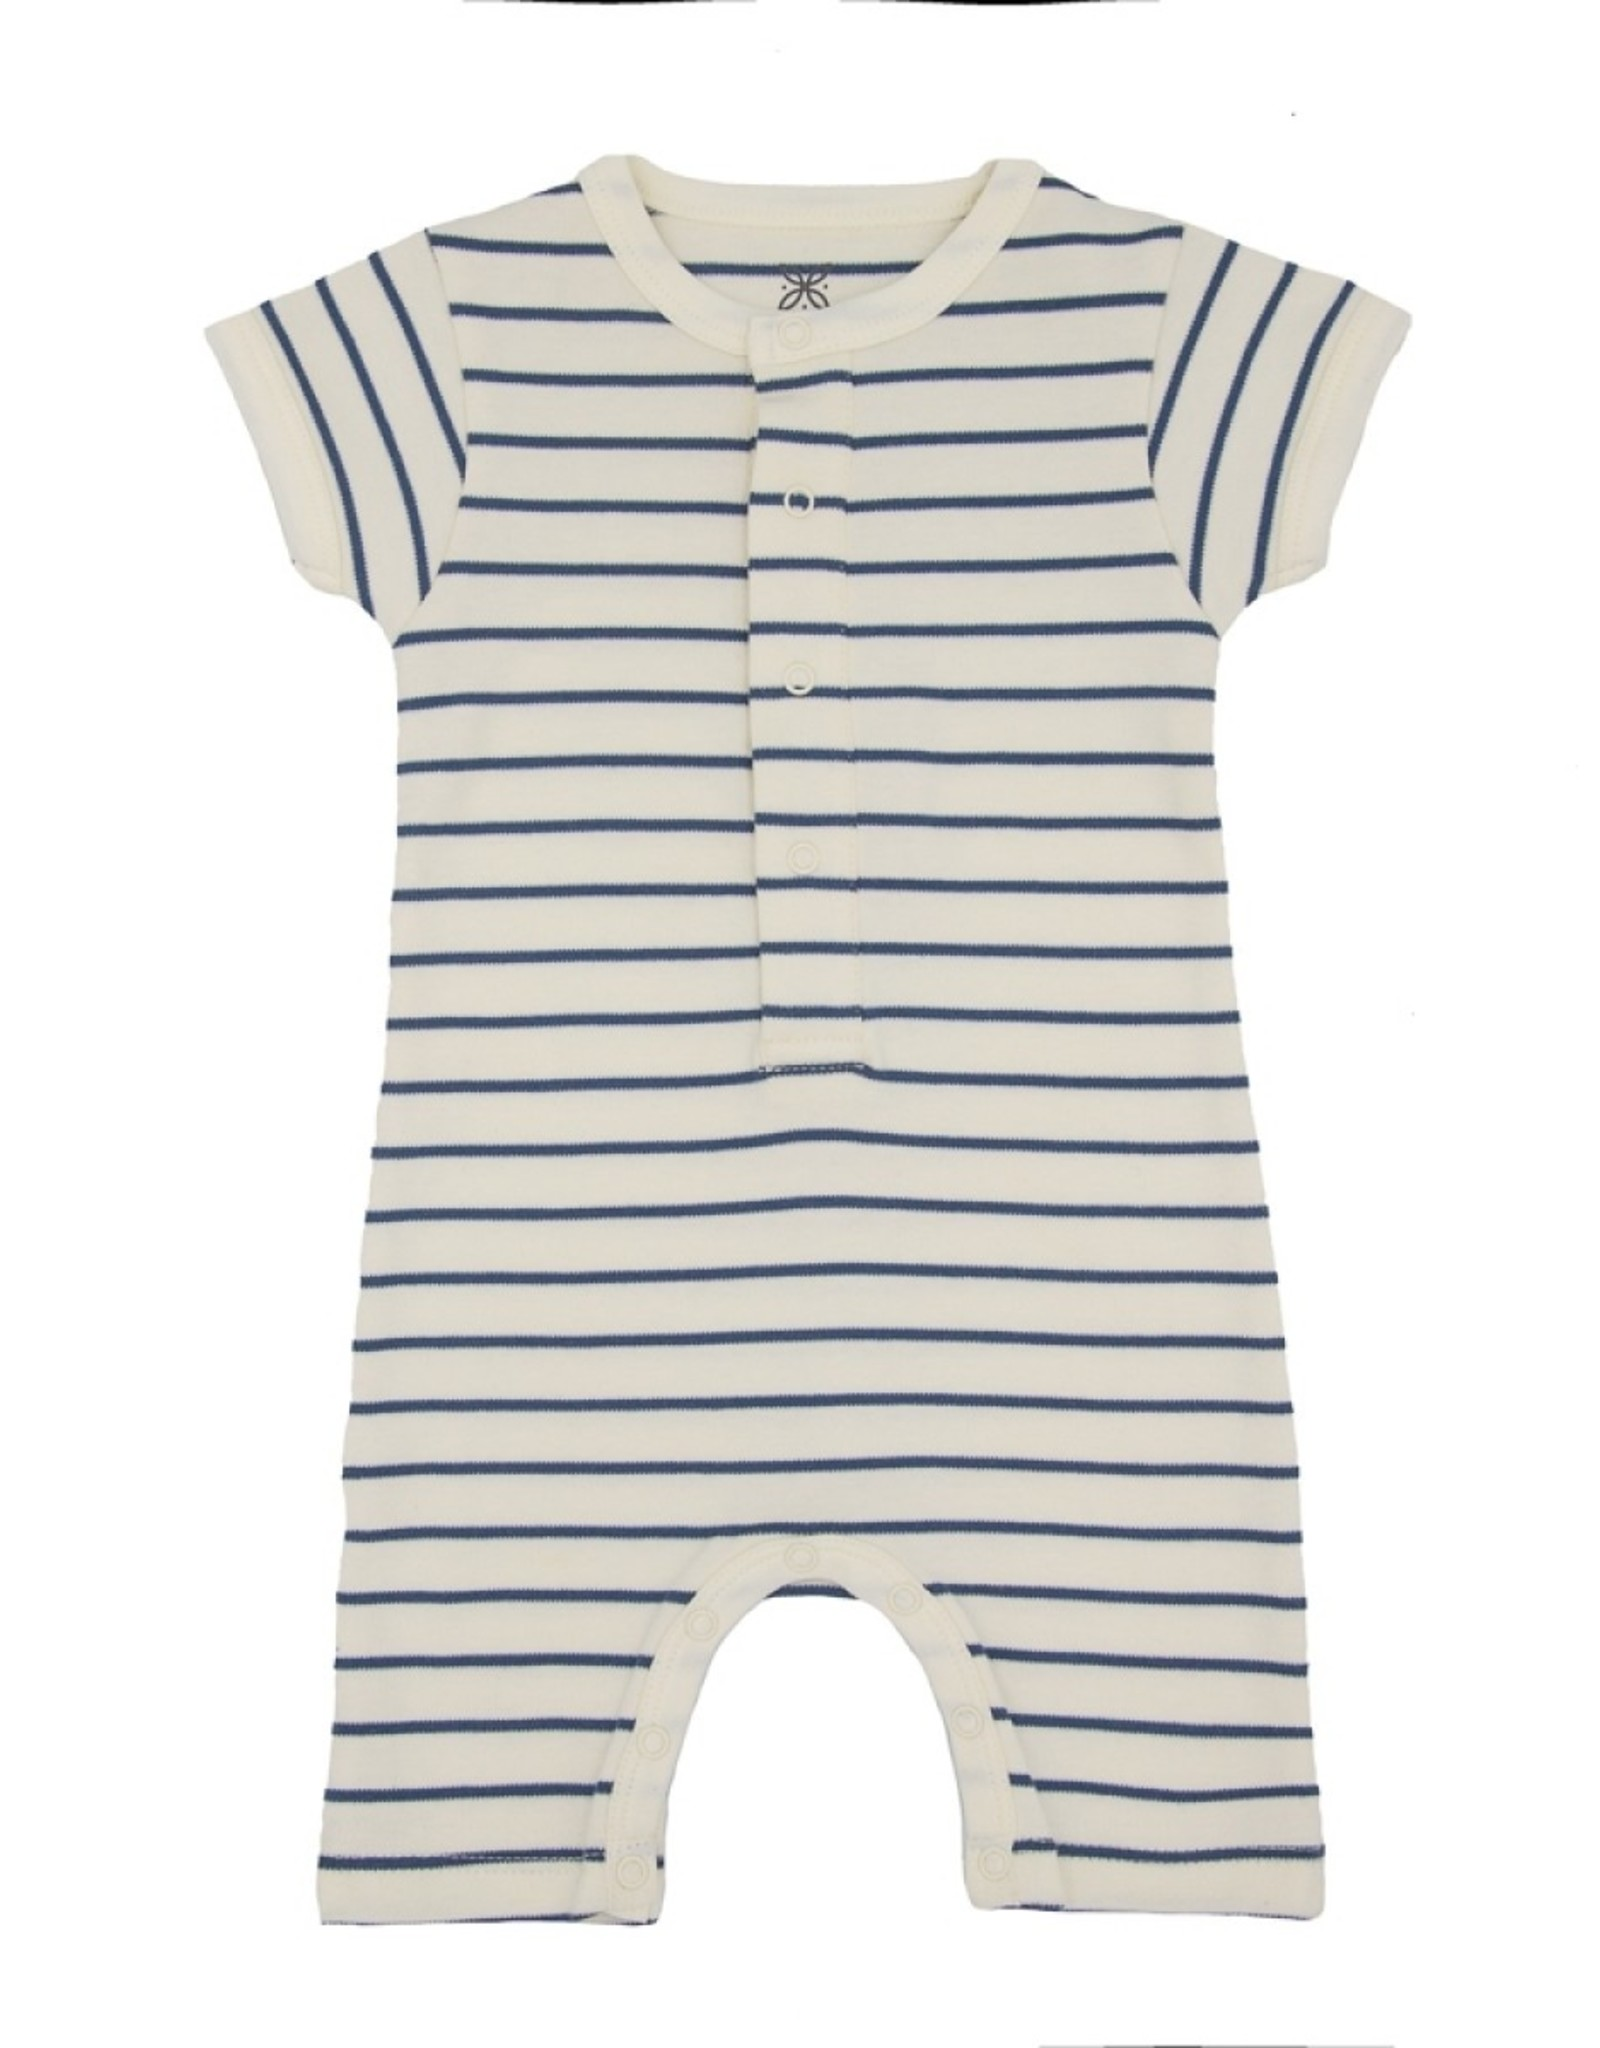 Lily & Mortimer Short Sleeve Romper- Navy Stripe